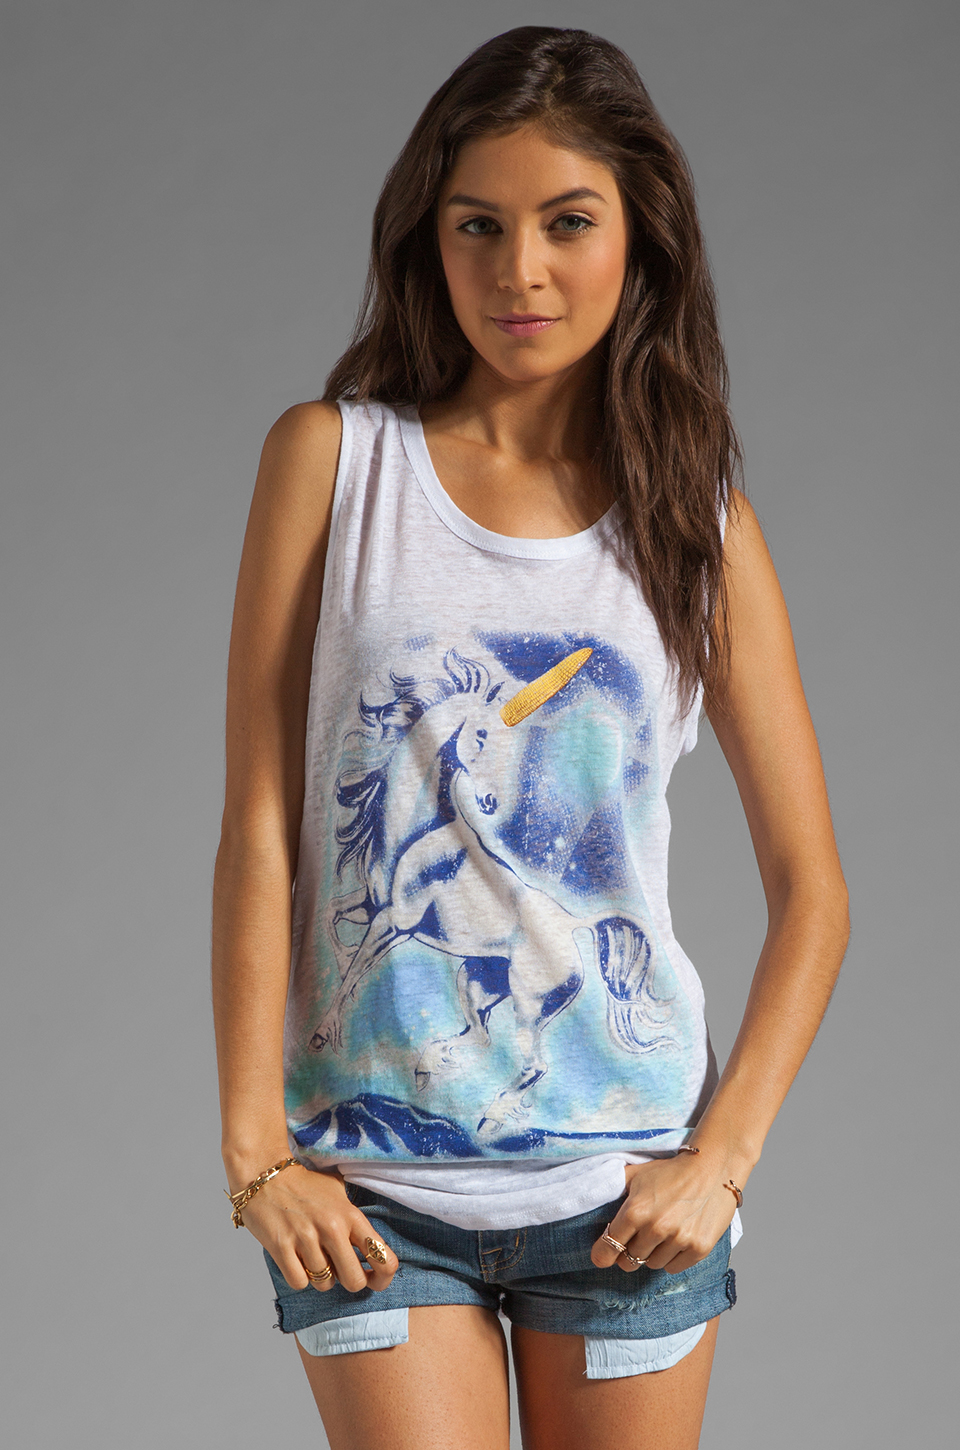 PJK Patterson J. Kincaid x the man repeller George Unicorn Tank in White